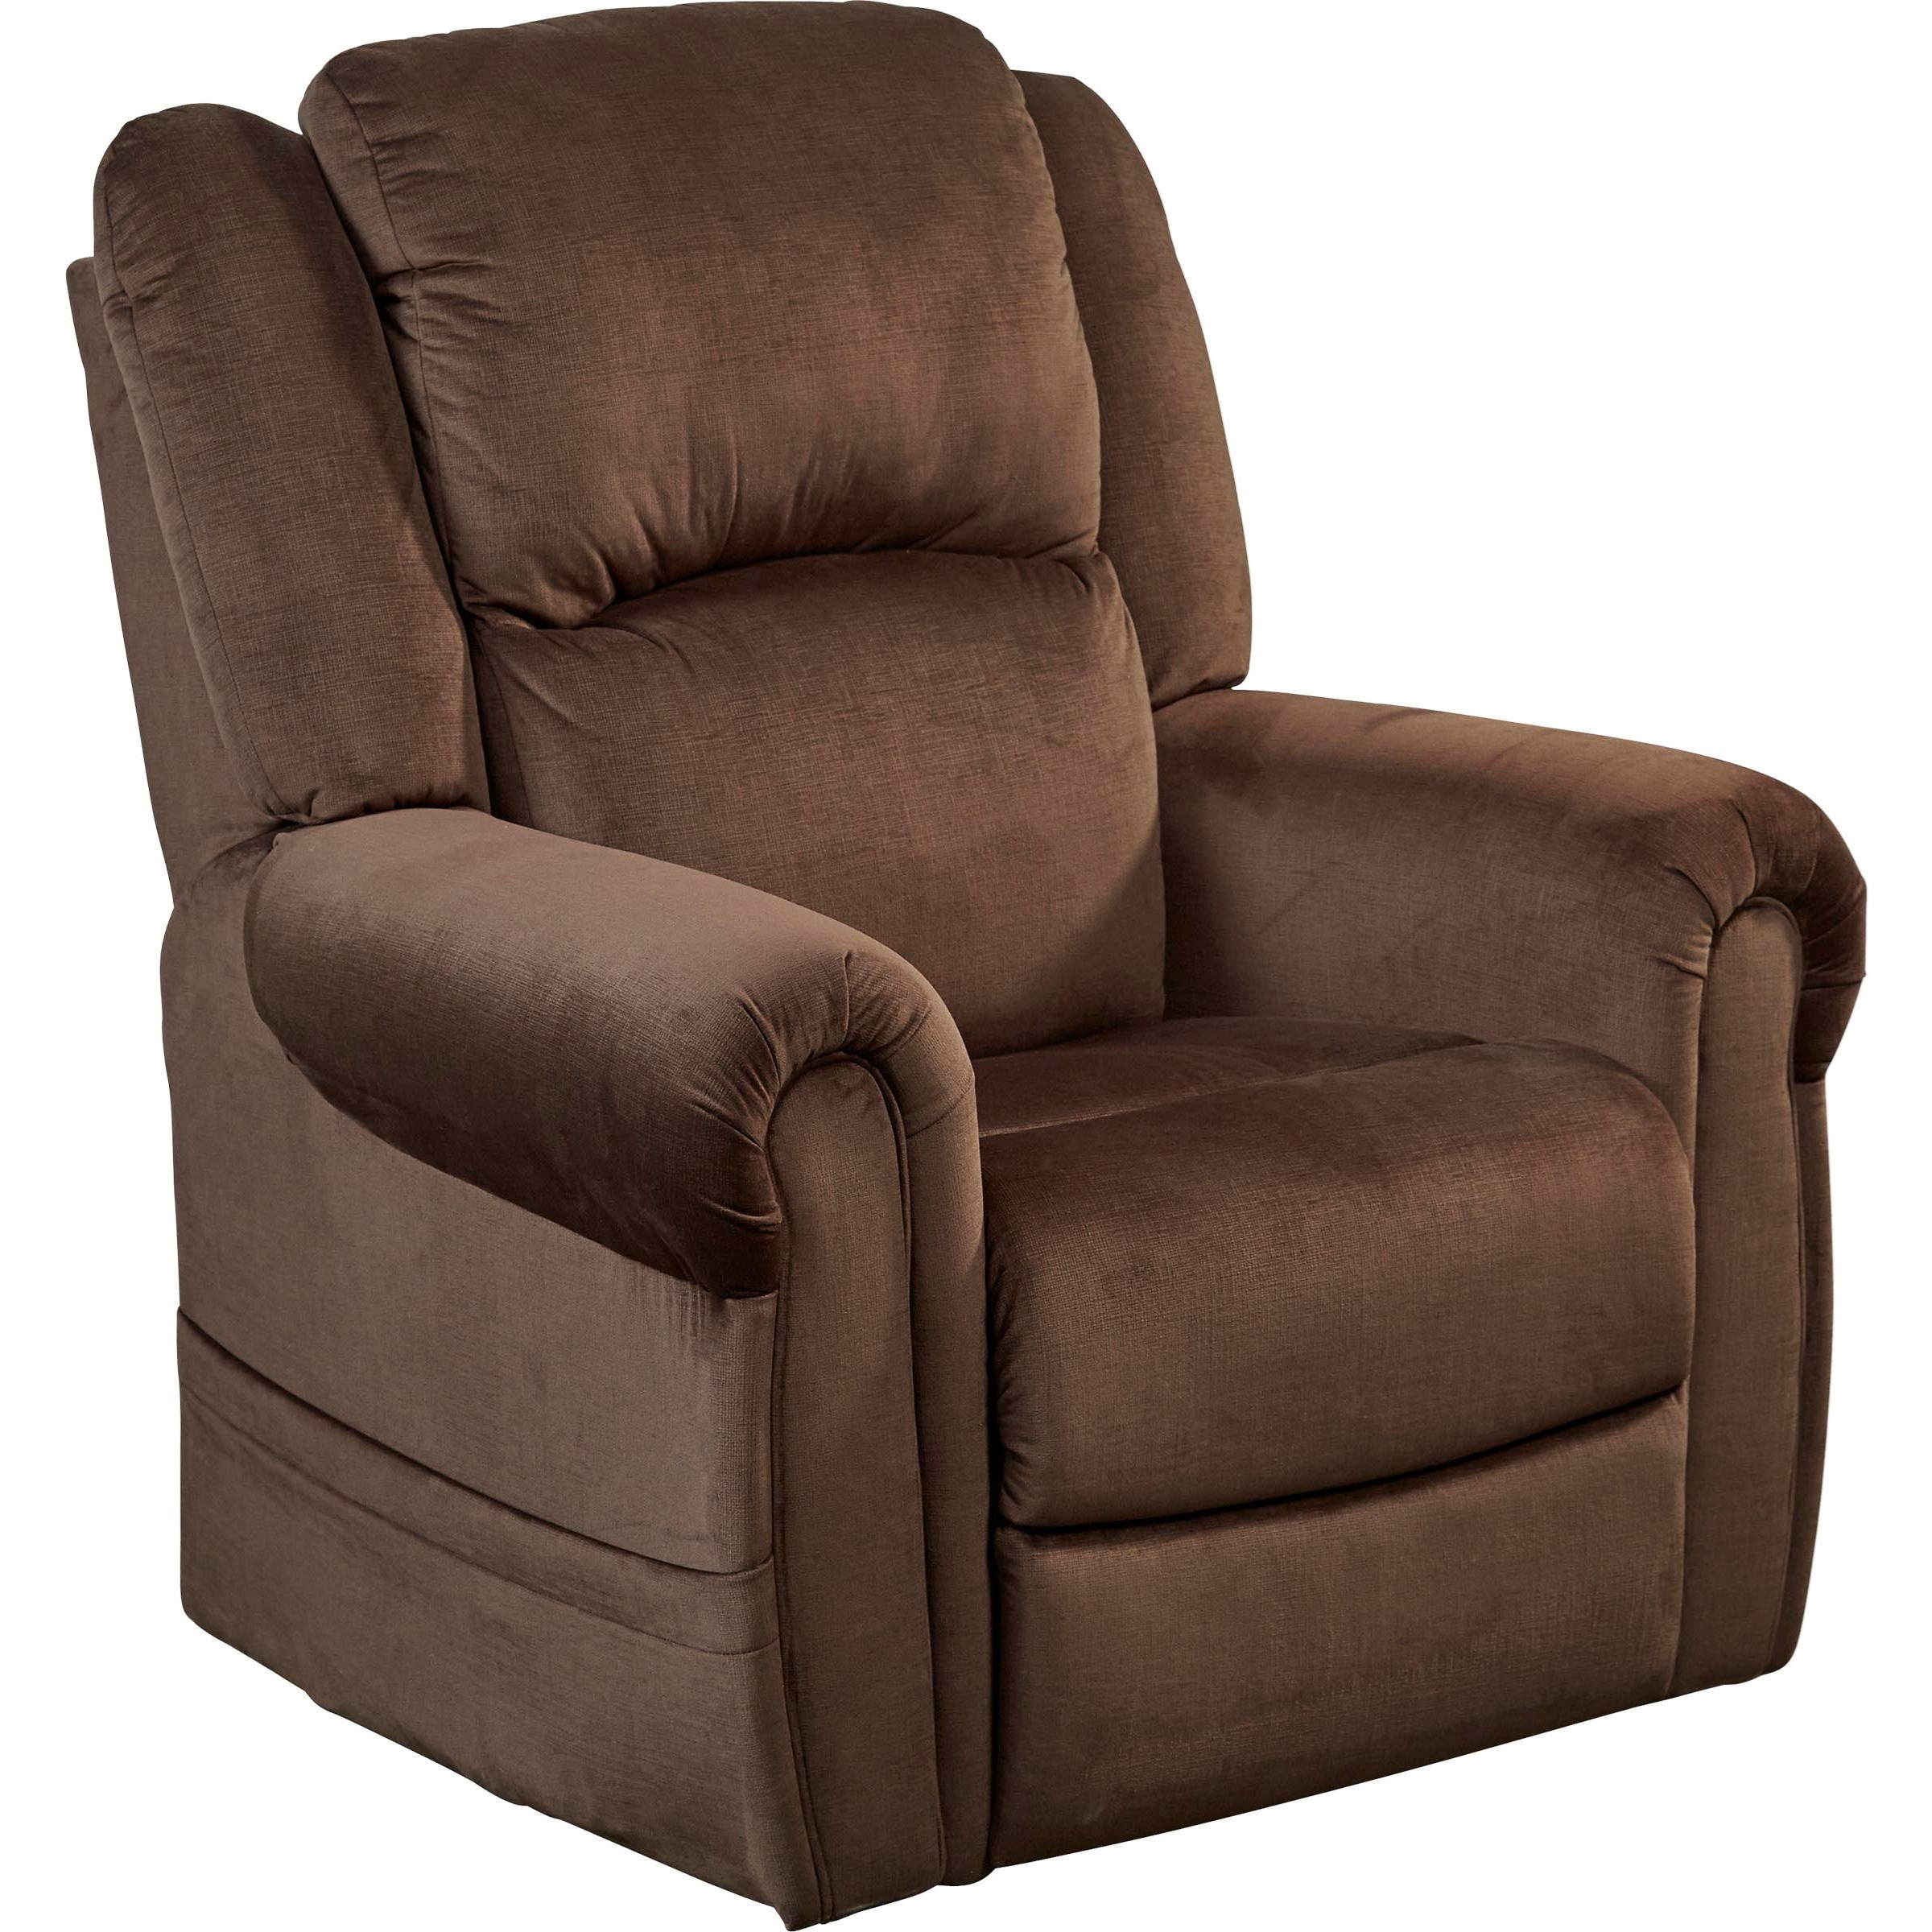 walmart recliner chairs chocolate recliners ip power com lift